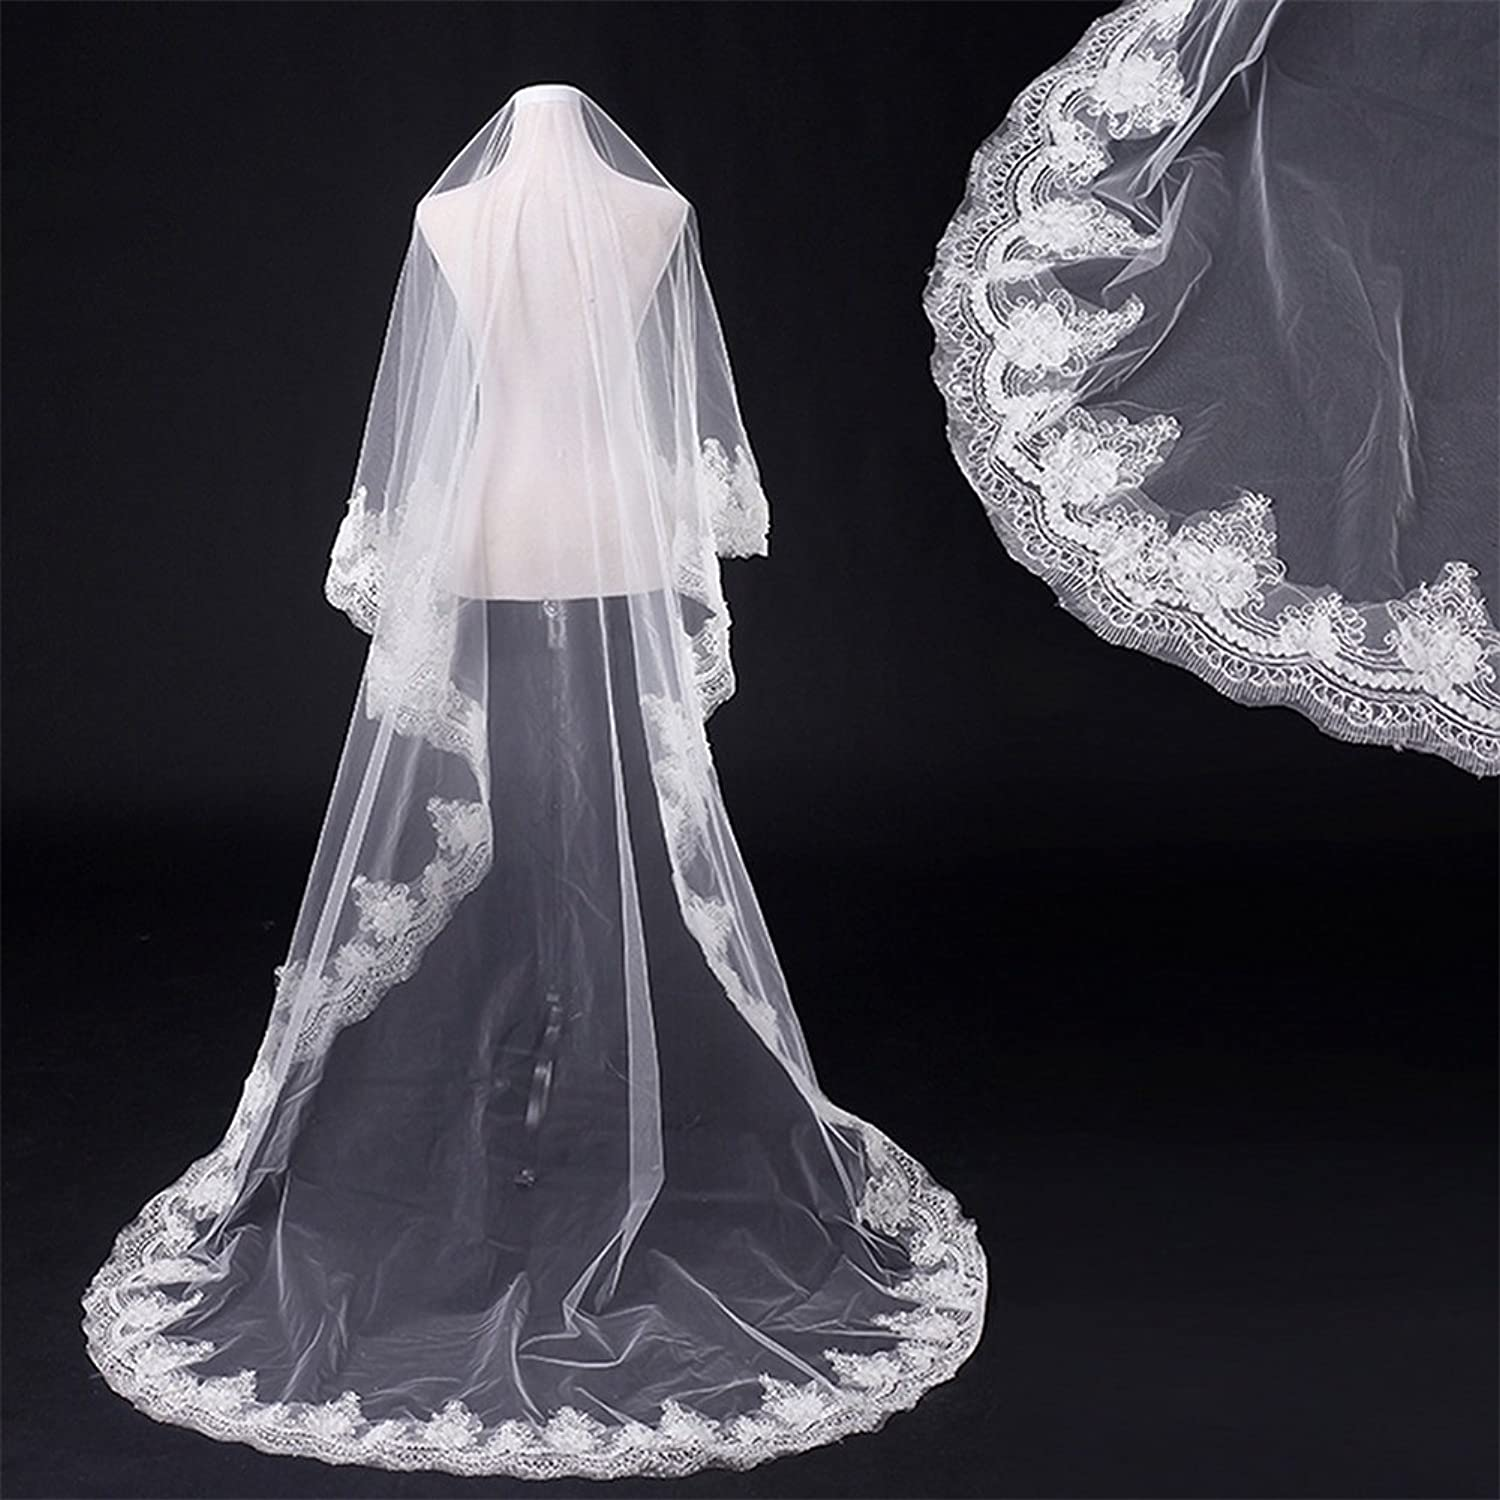 1 Tier Ivory Tulle Sheer Bridal Veils Sequin Applique Lace Edge Cathedral Wedding Accessories for Bride